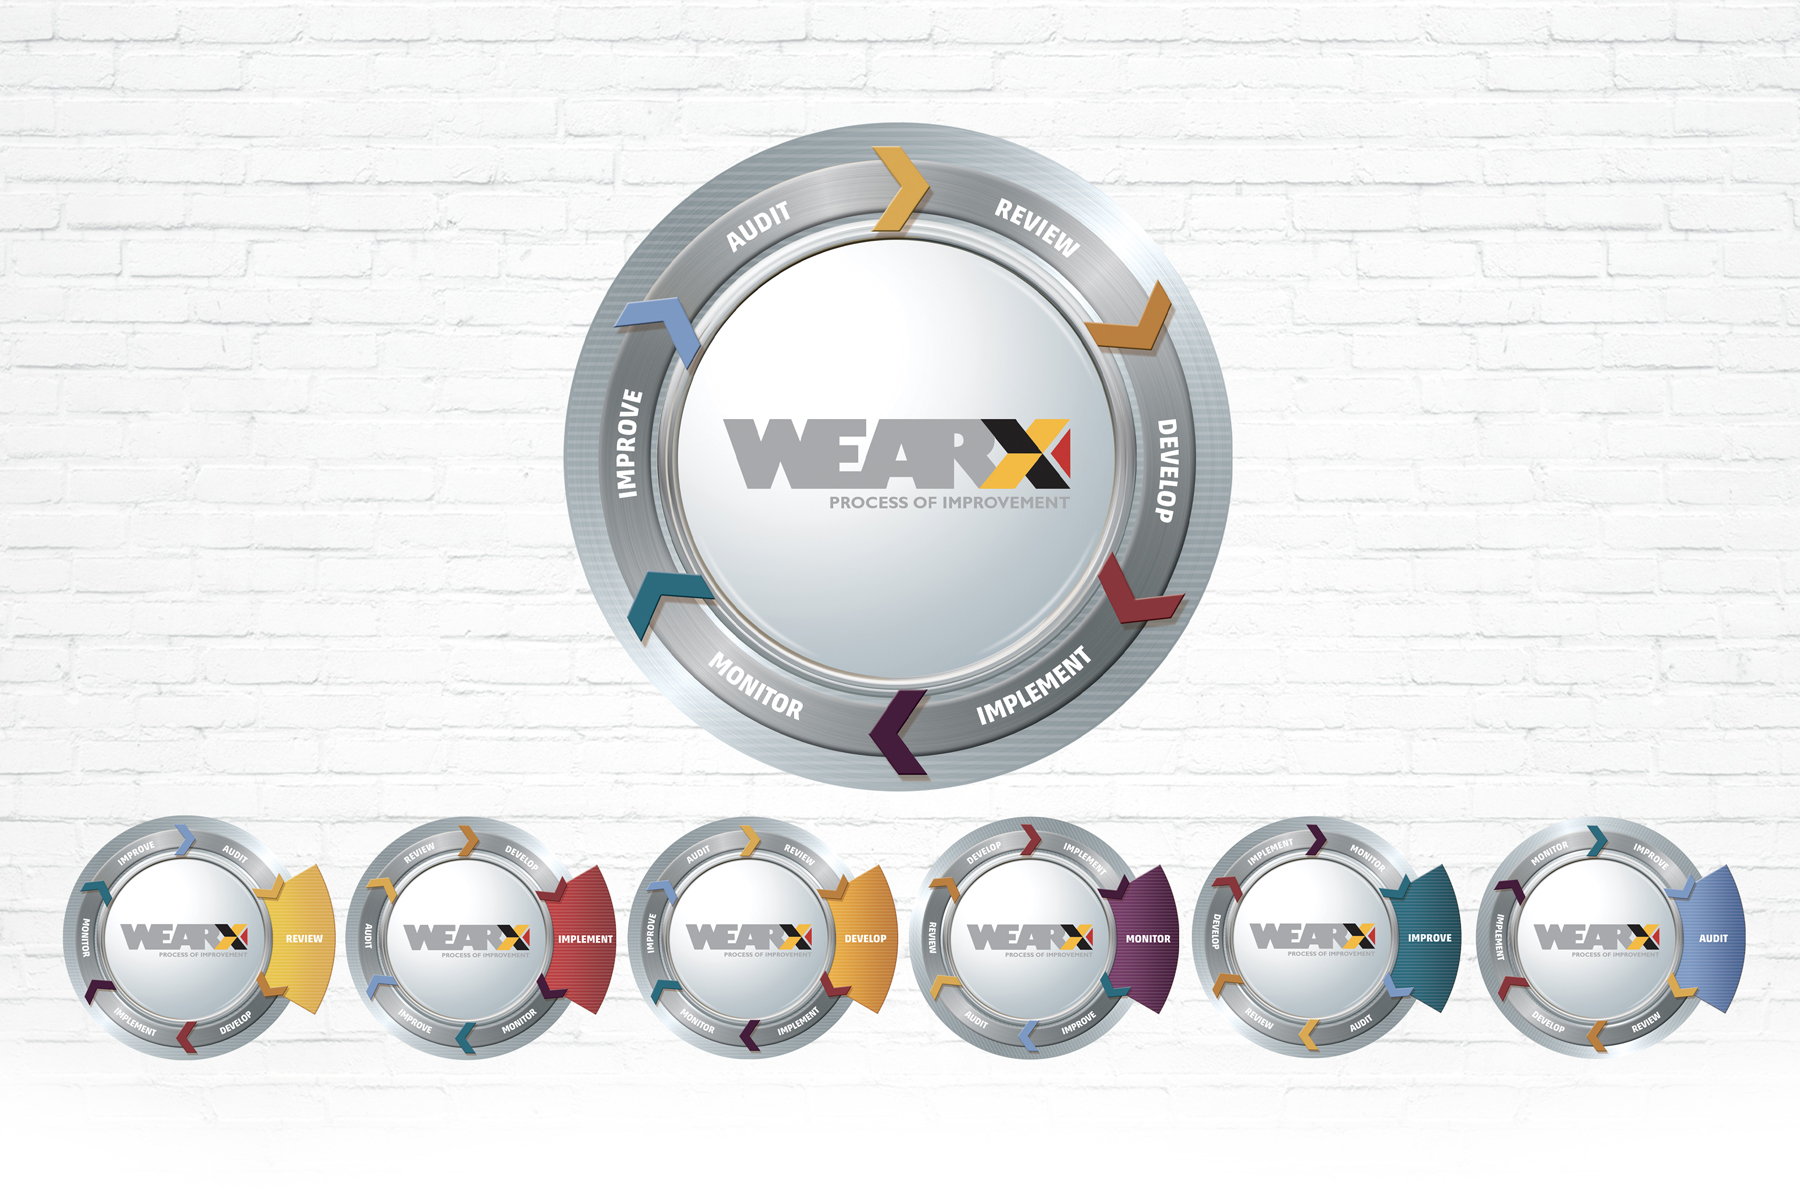 WEARX Process of Improvement Infographic